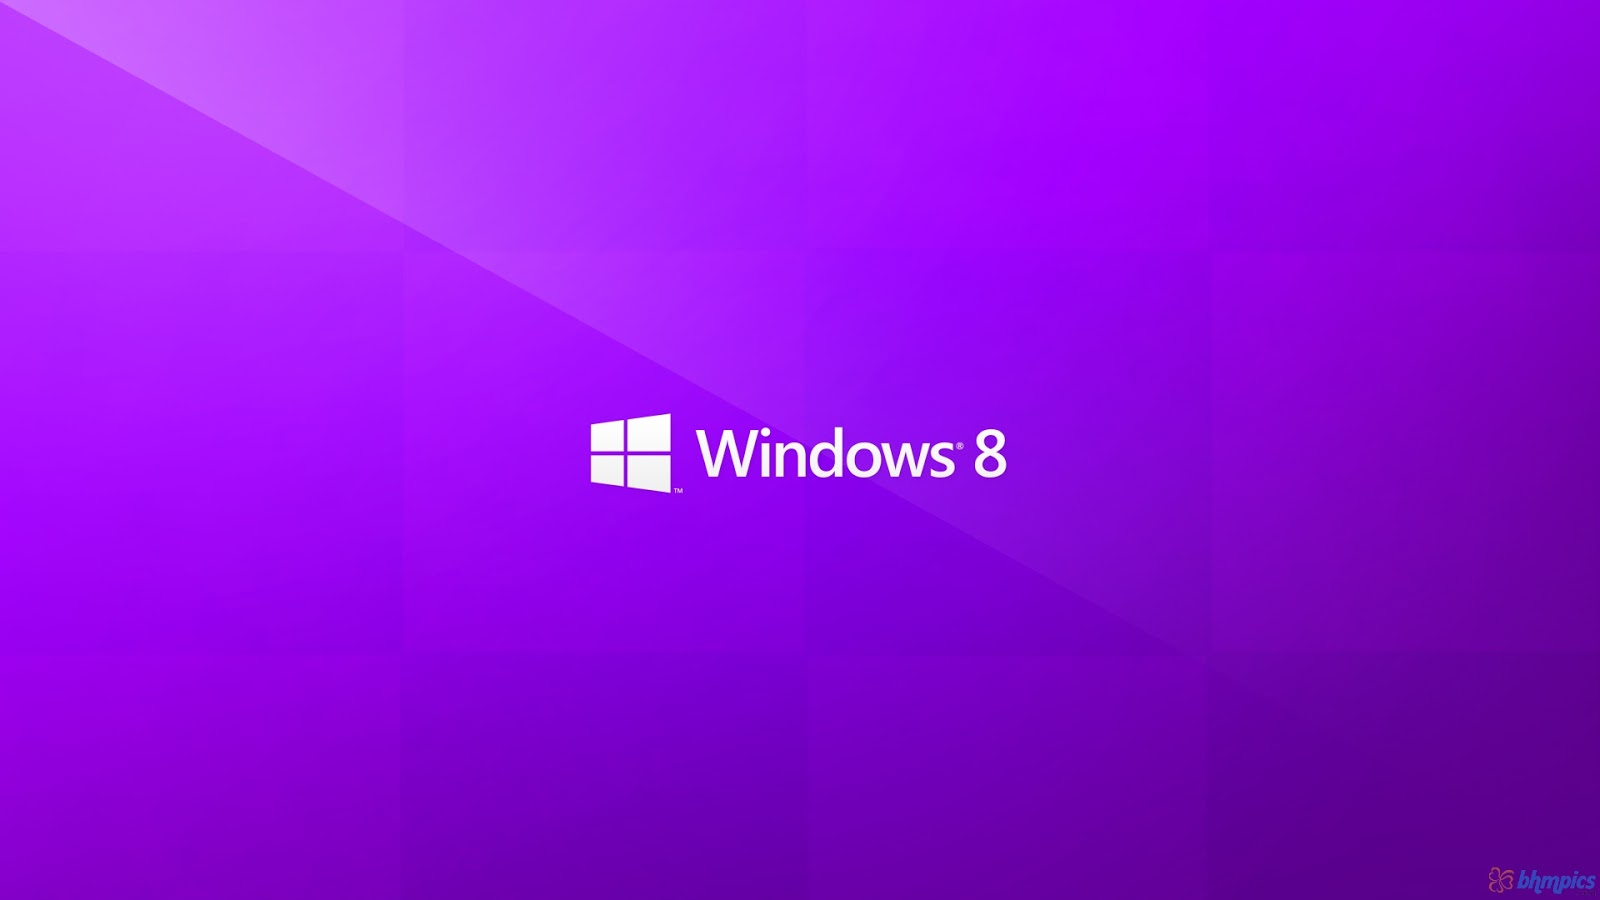 Windows 8 Official Wallpaper Purple Free Best Pictures: Wi...